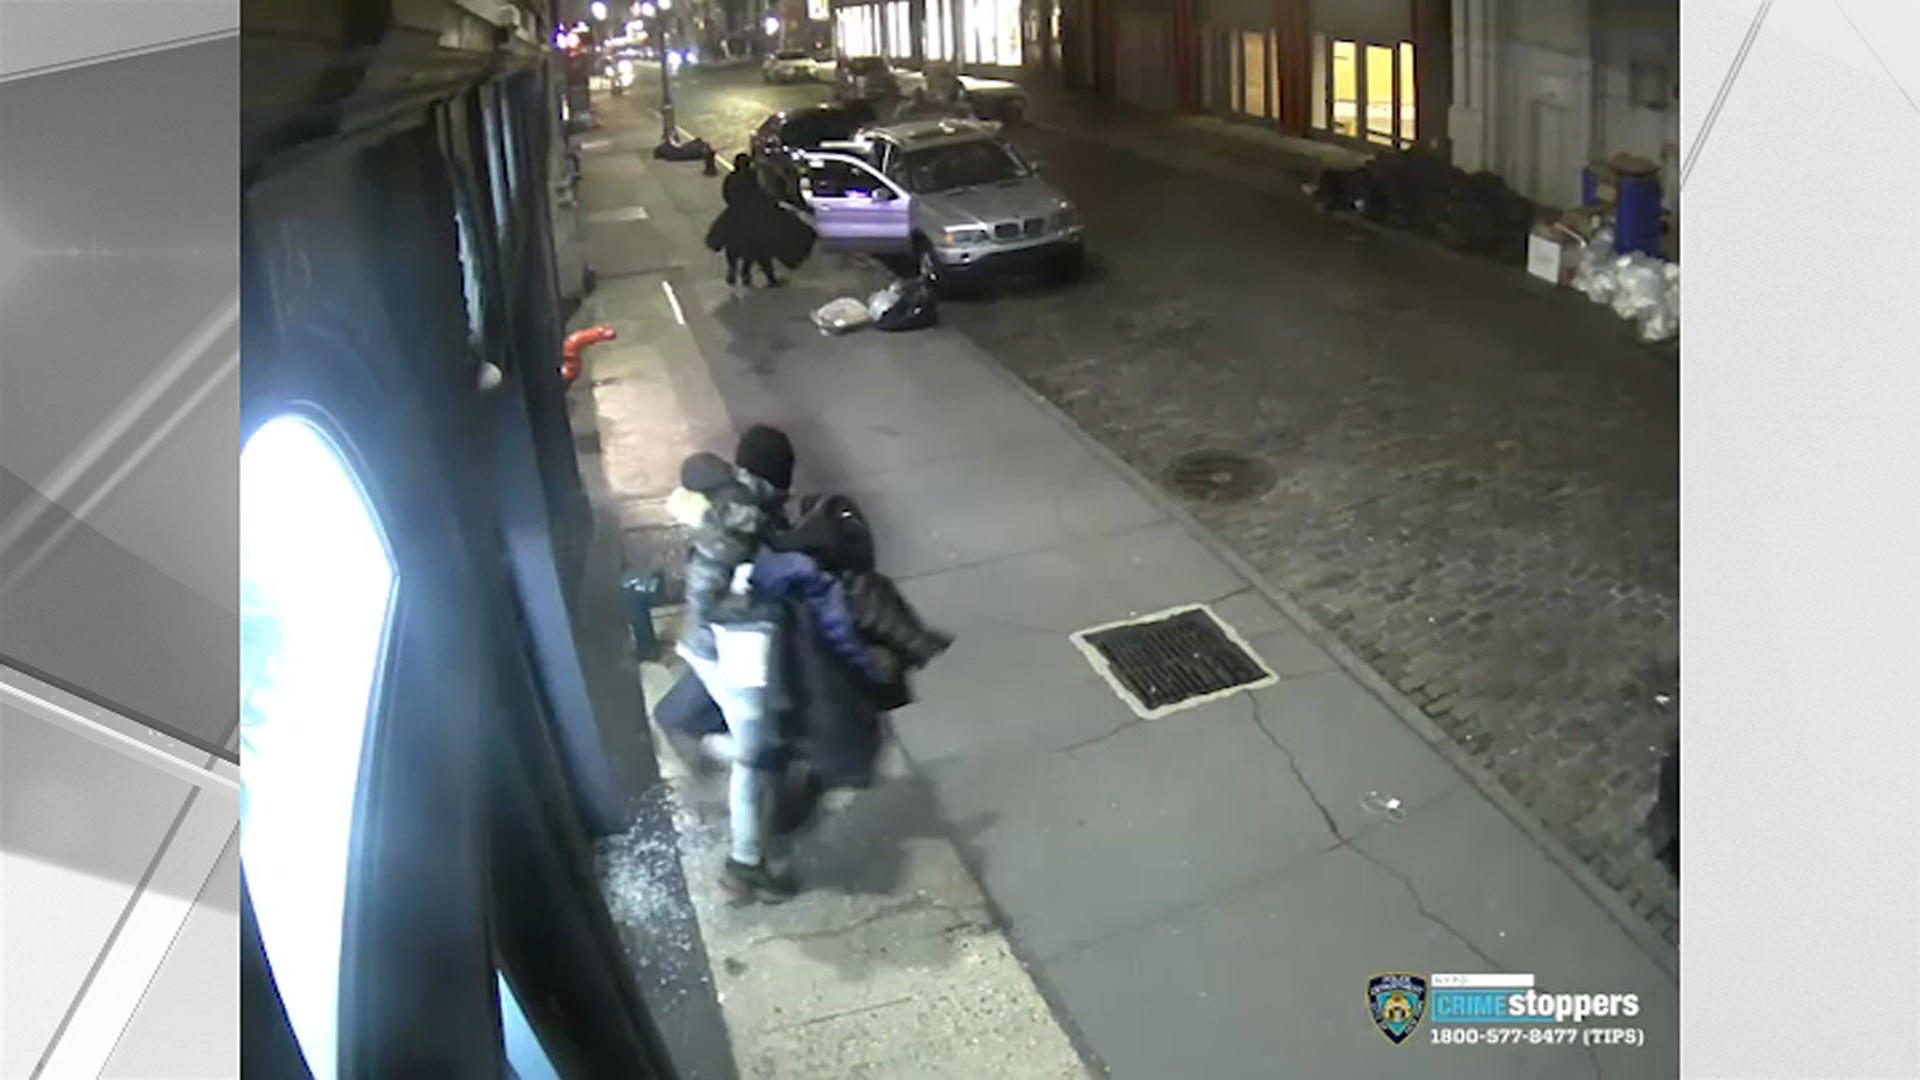 Police Search for Suspects in $42,000 NYC Coat Heist